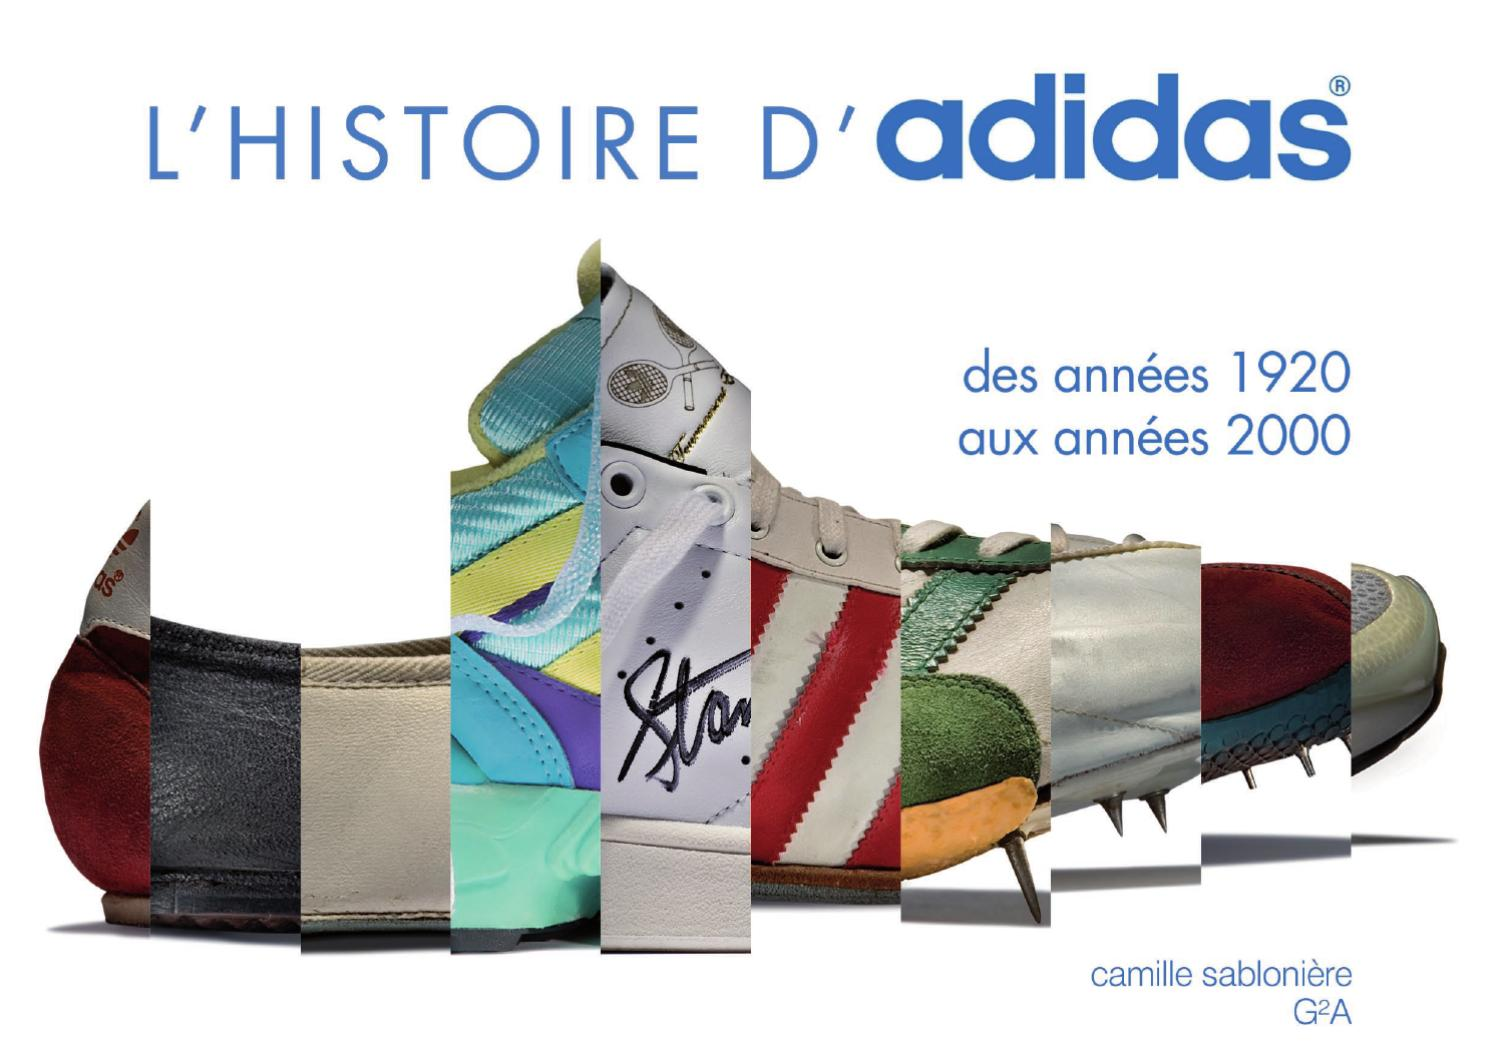 Sabloniere Issuu Camille By Of Adidas History PiuOkXZT